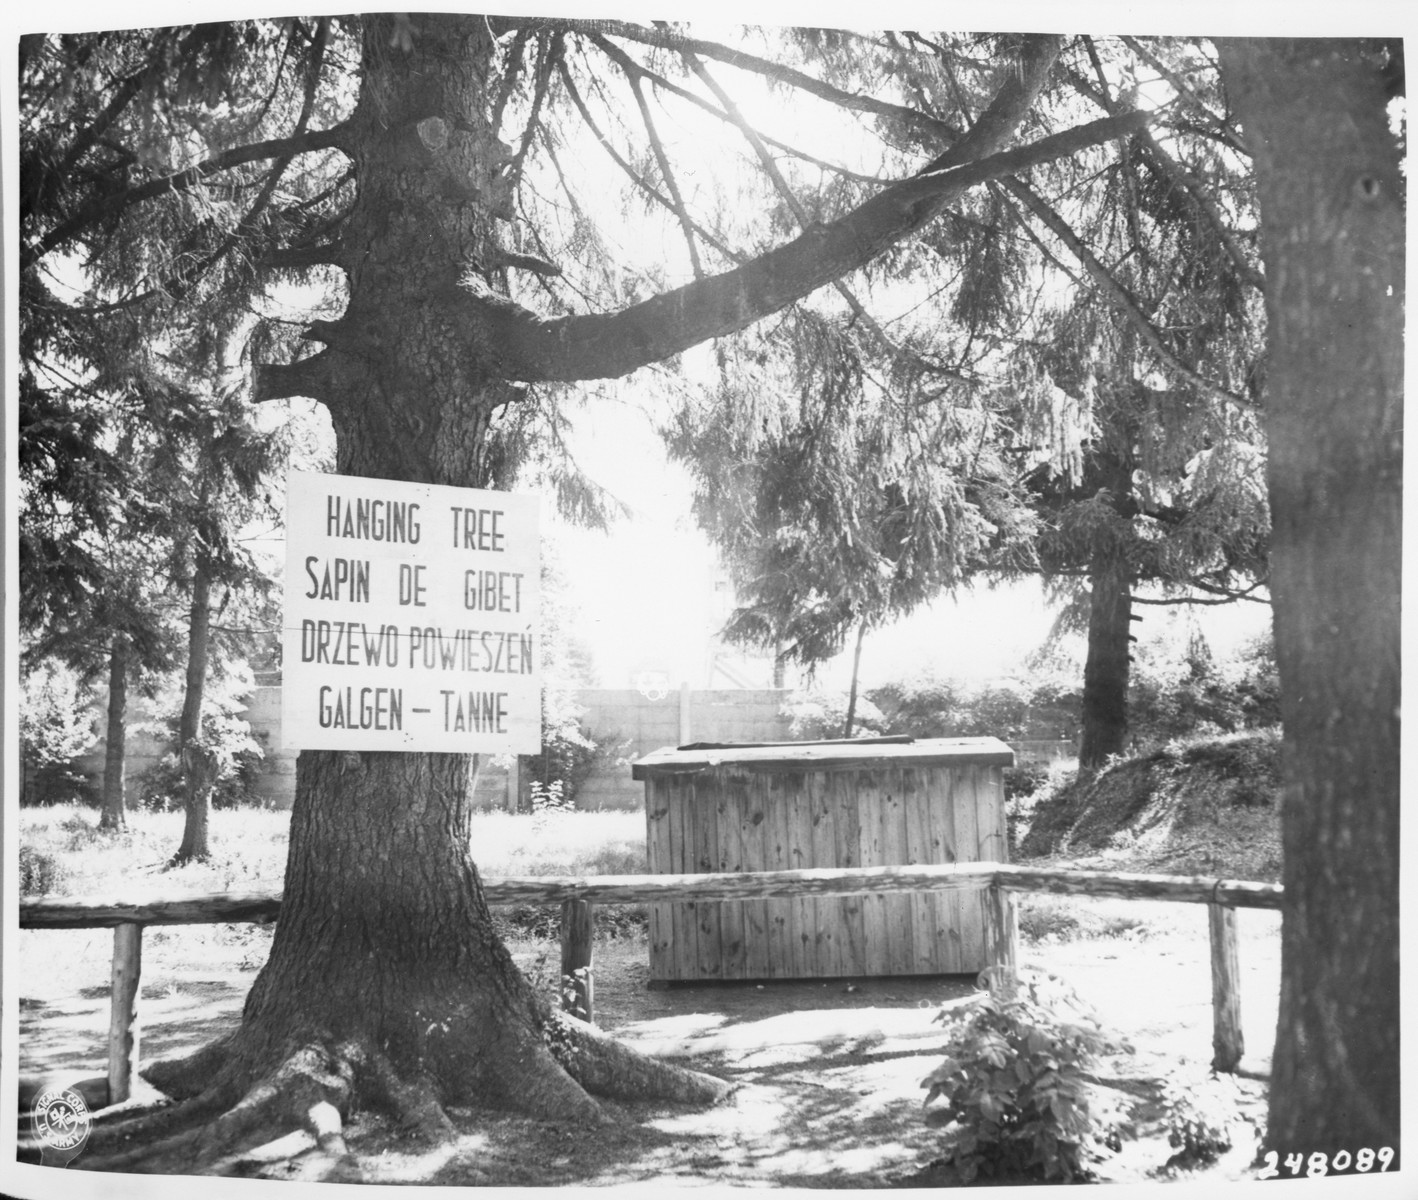 View of a tree in the Dachau concentration camp, located near the crematorium, where prisoners were hanged.  A sign in four languages identifying how it was used is posted on the tree.